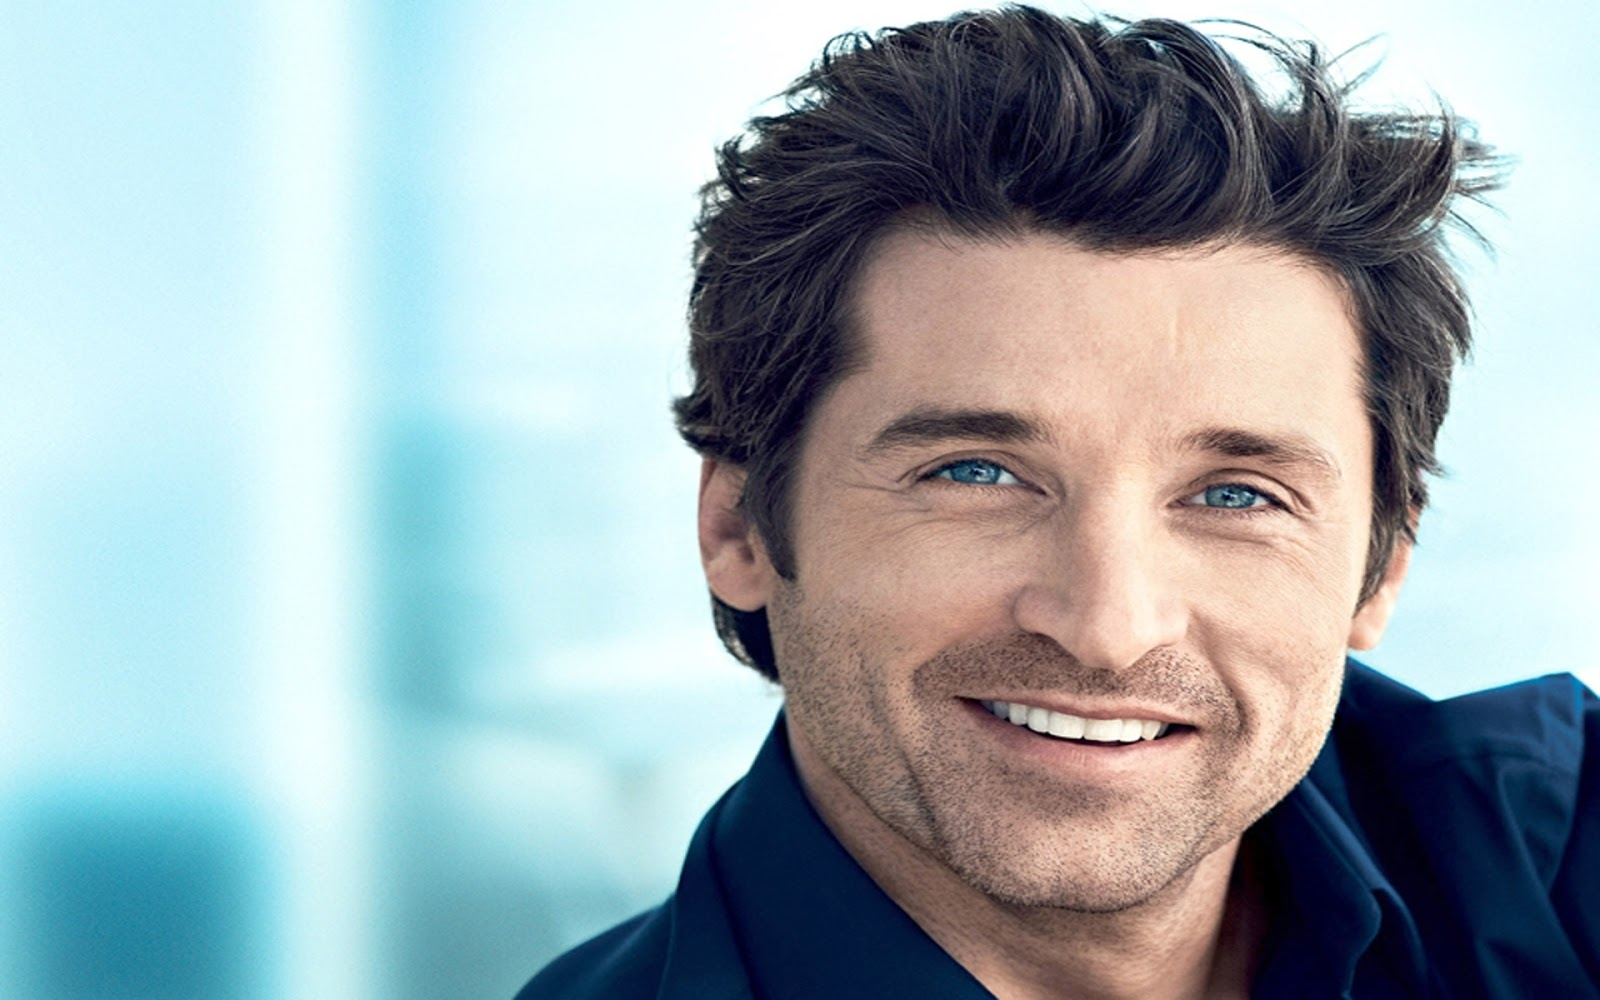 hollywood actor wallpaper picture - photo #11